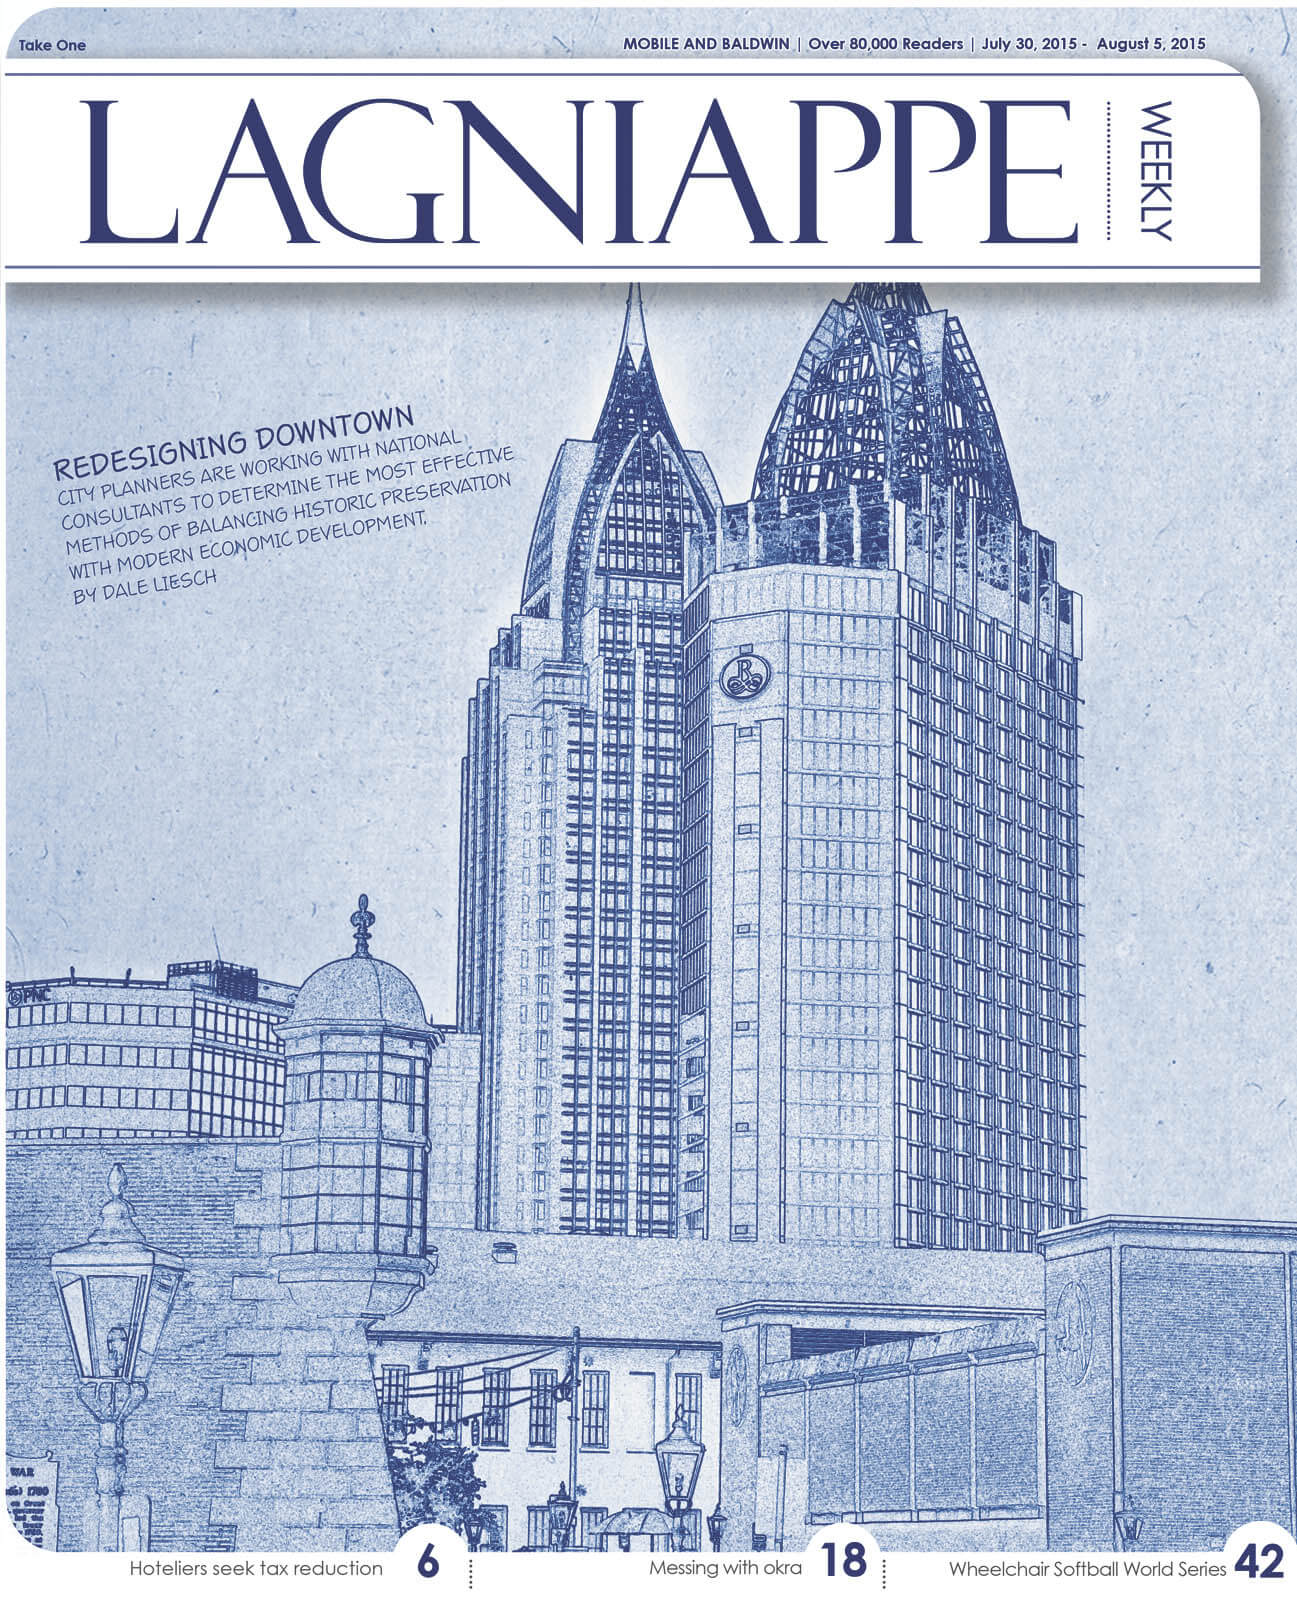 COVER STORY: Changes geared toward strengthening downtown development